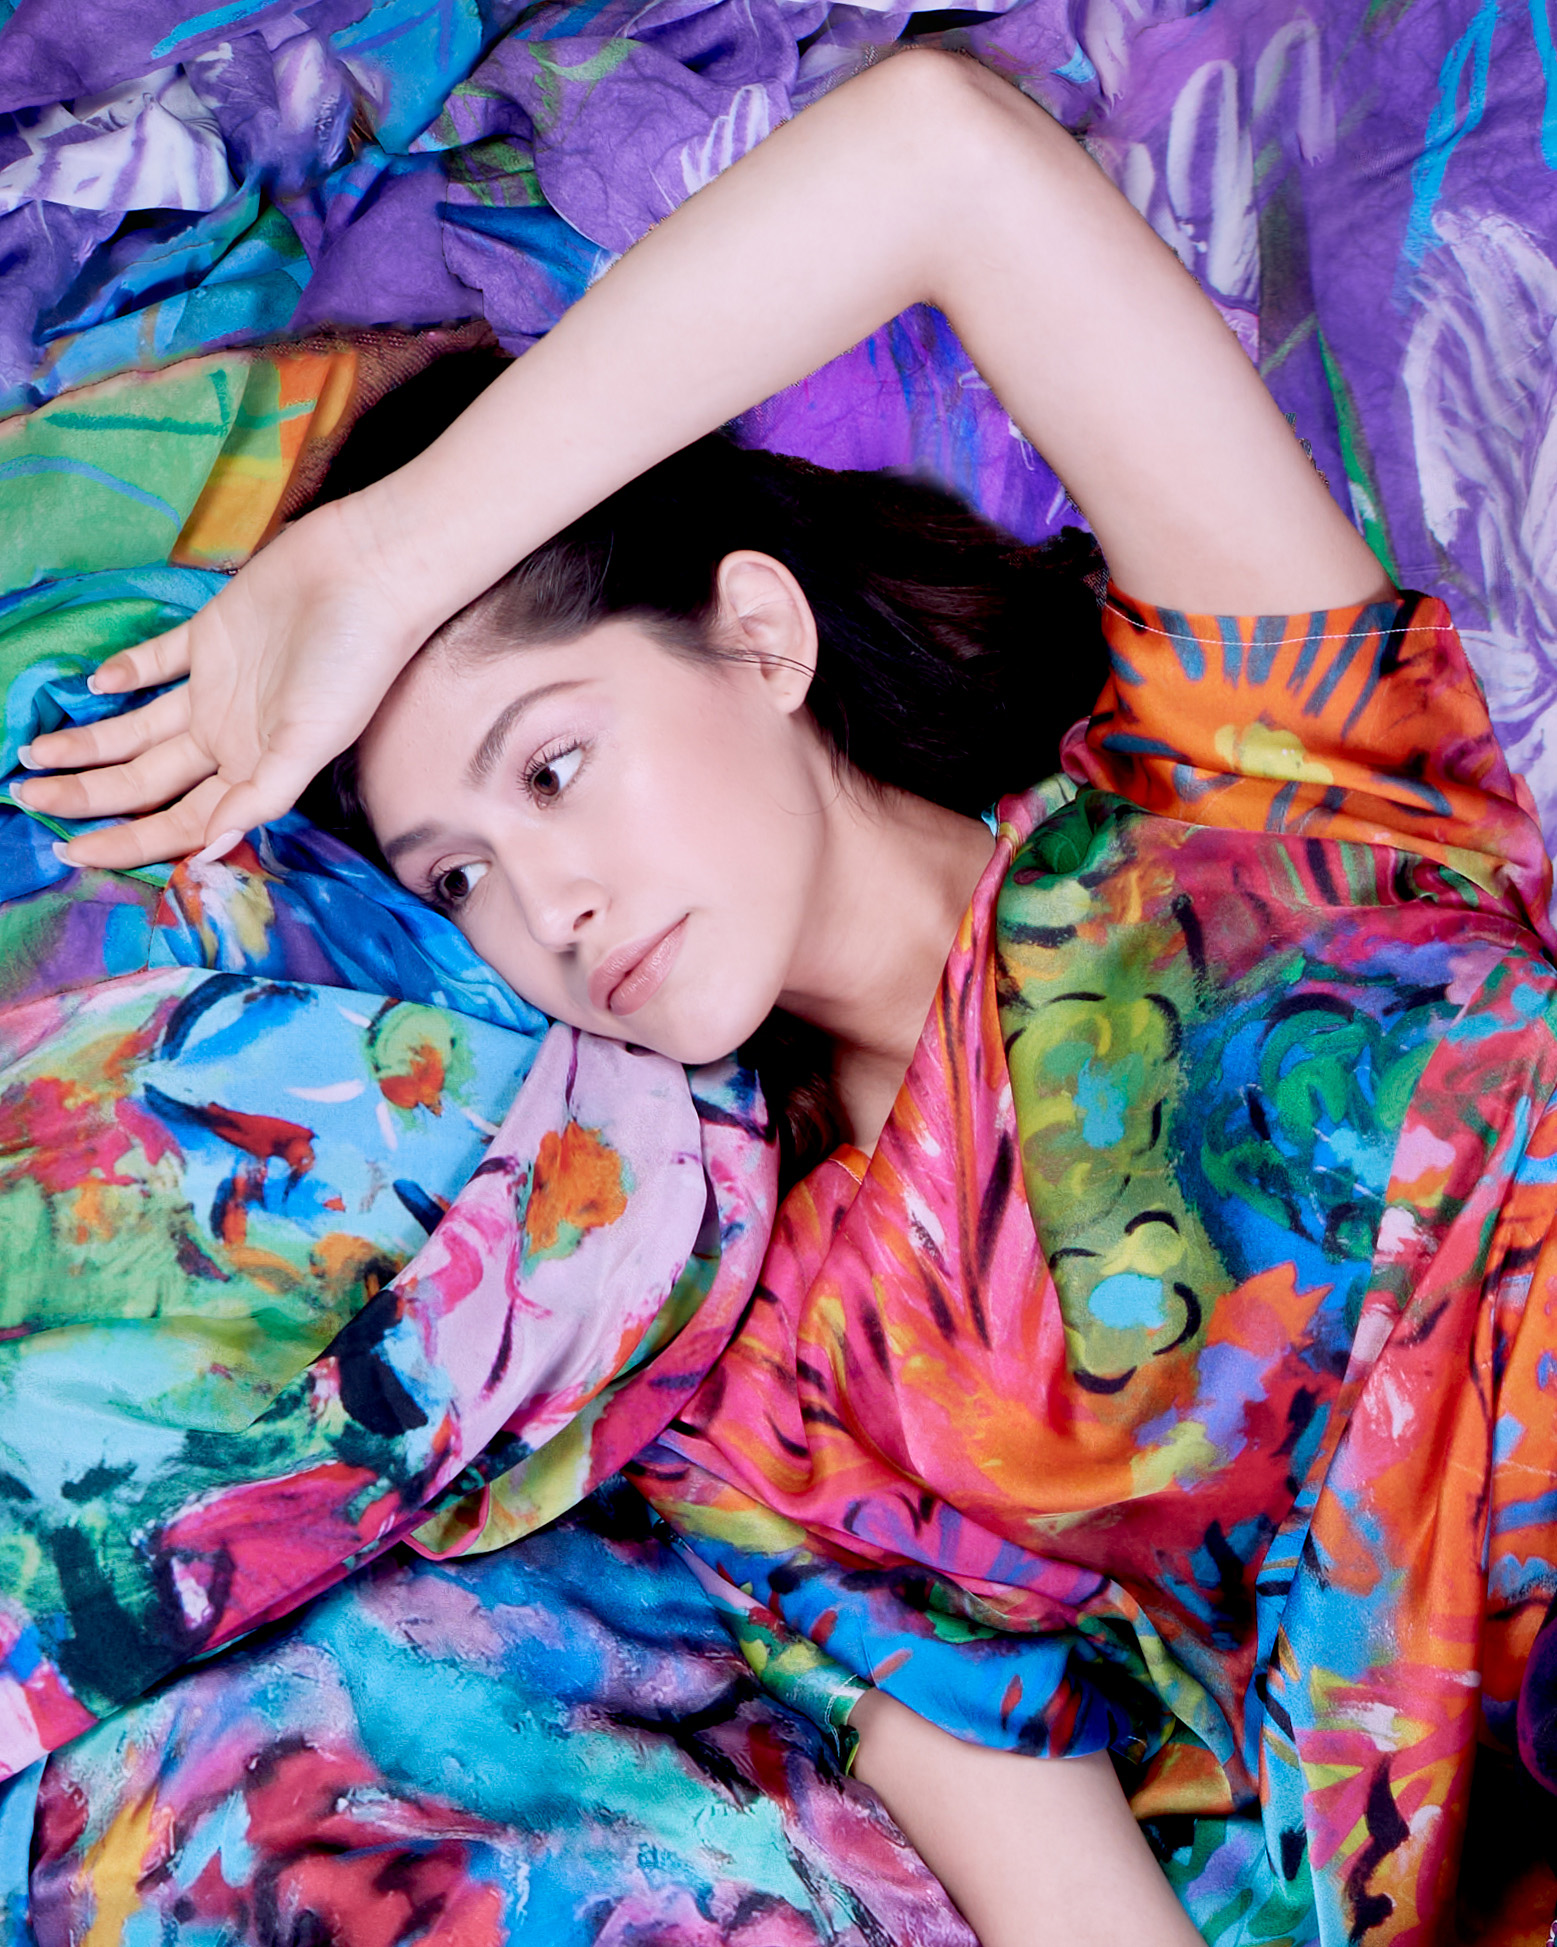 lookbook-photo-model-reclinging-silk-scarves